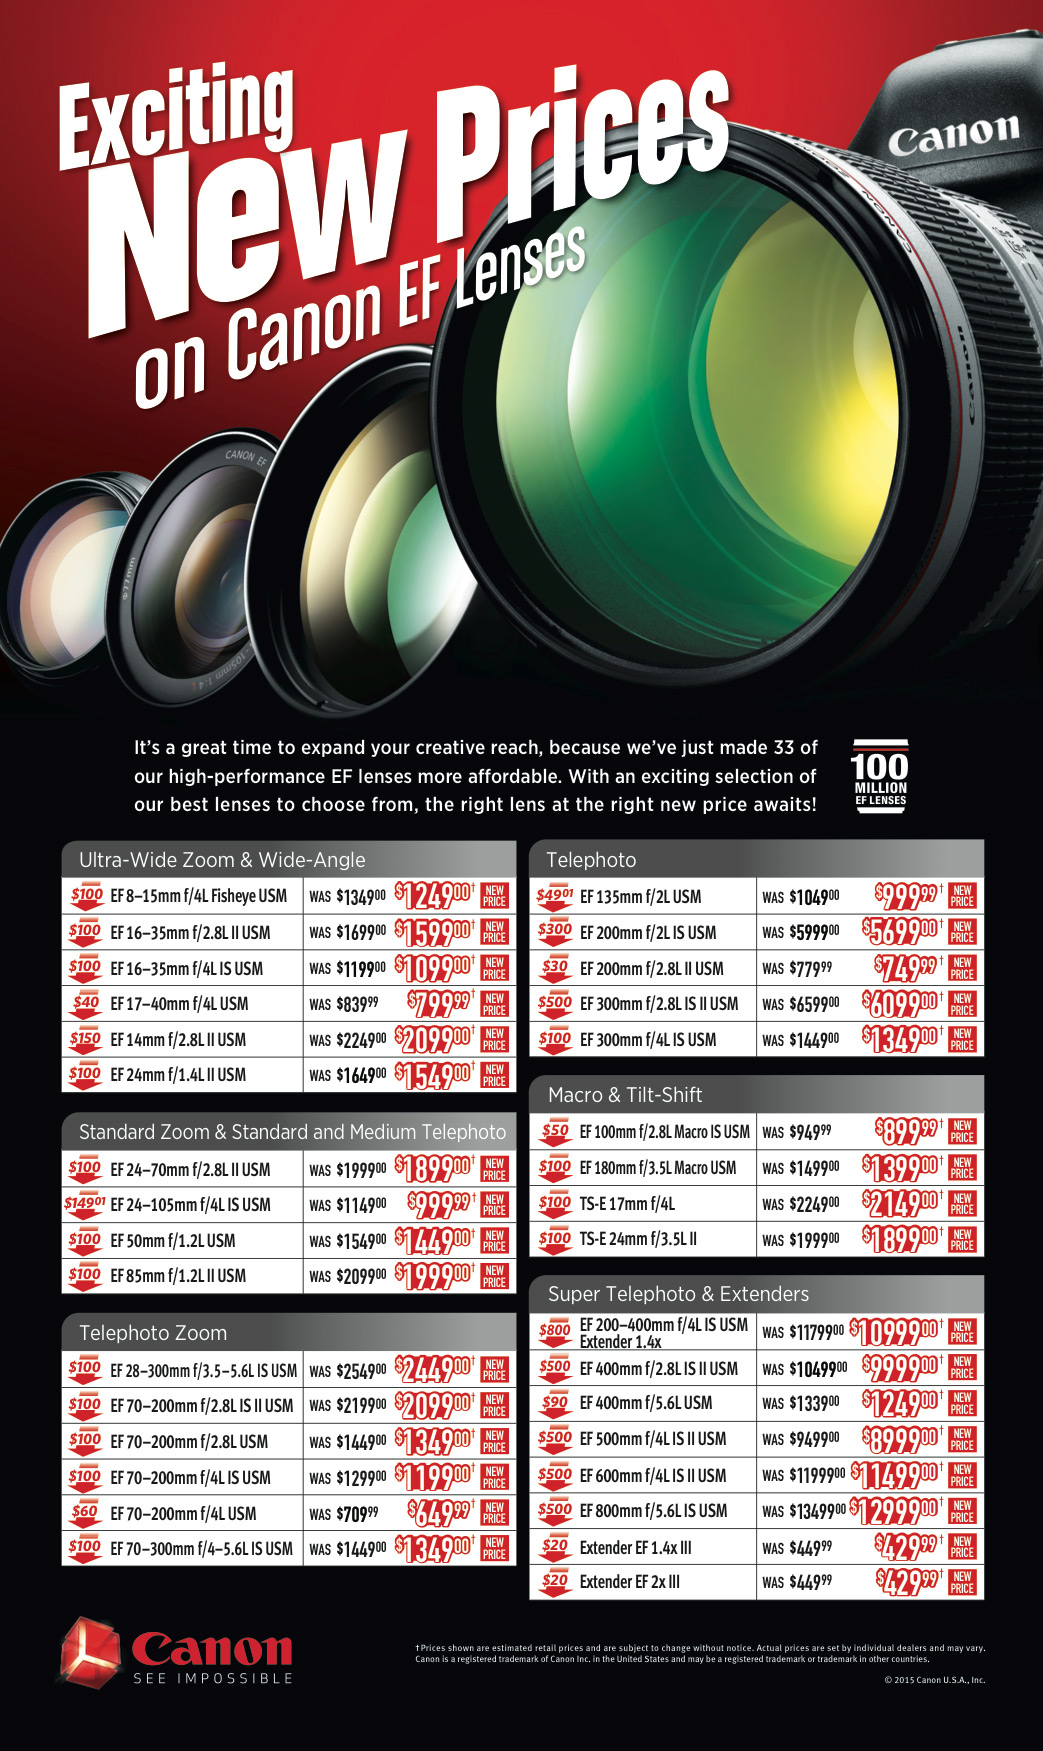 Canon USA drops prices on 31 high-end L lenses: Digital